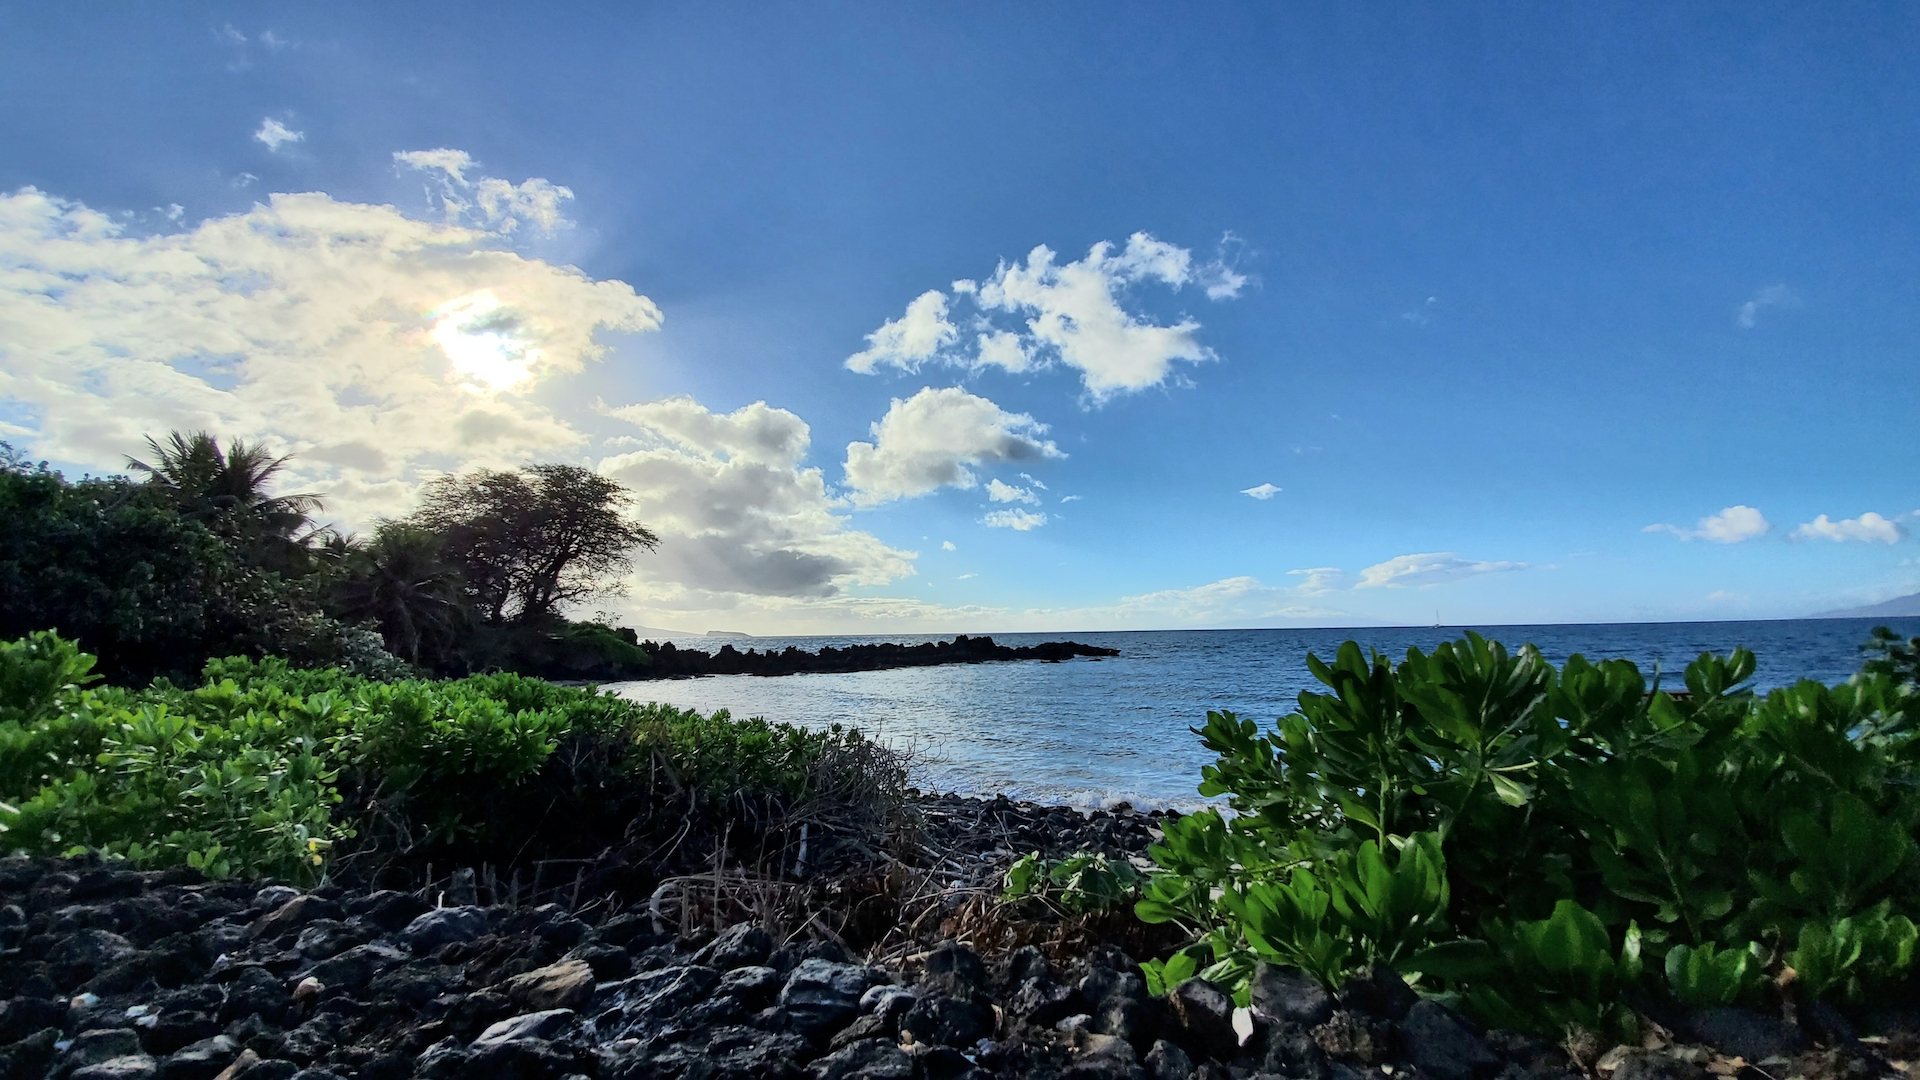 View towards Kaho'olawe and Molokini from the View from the Keawala'i Congregational Church.